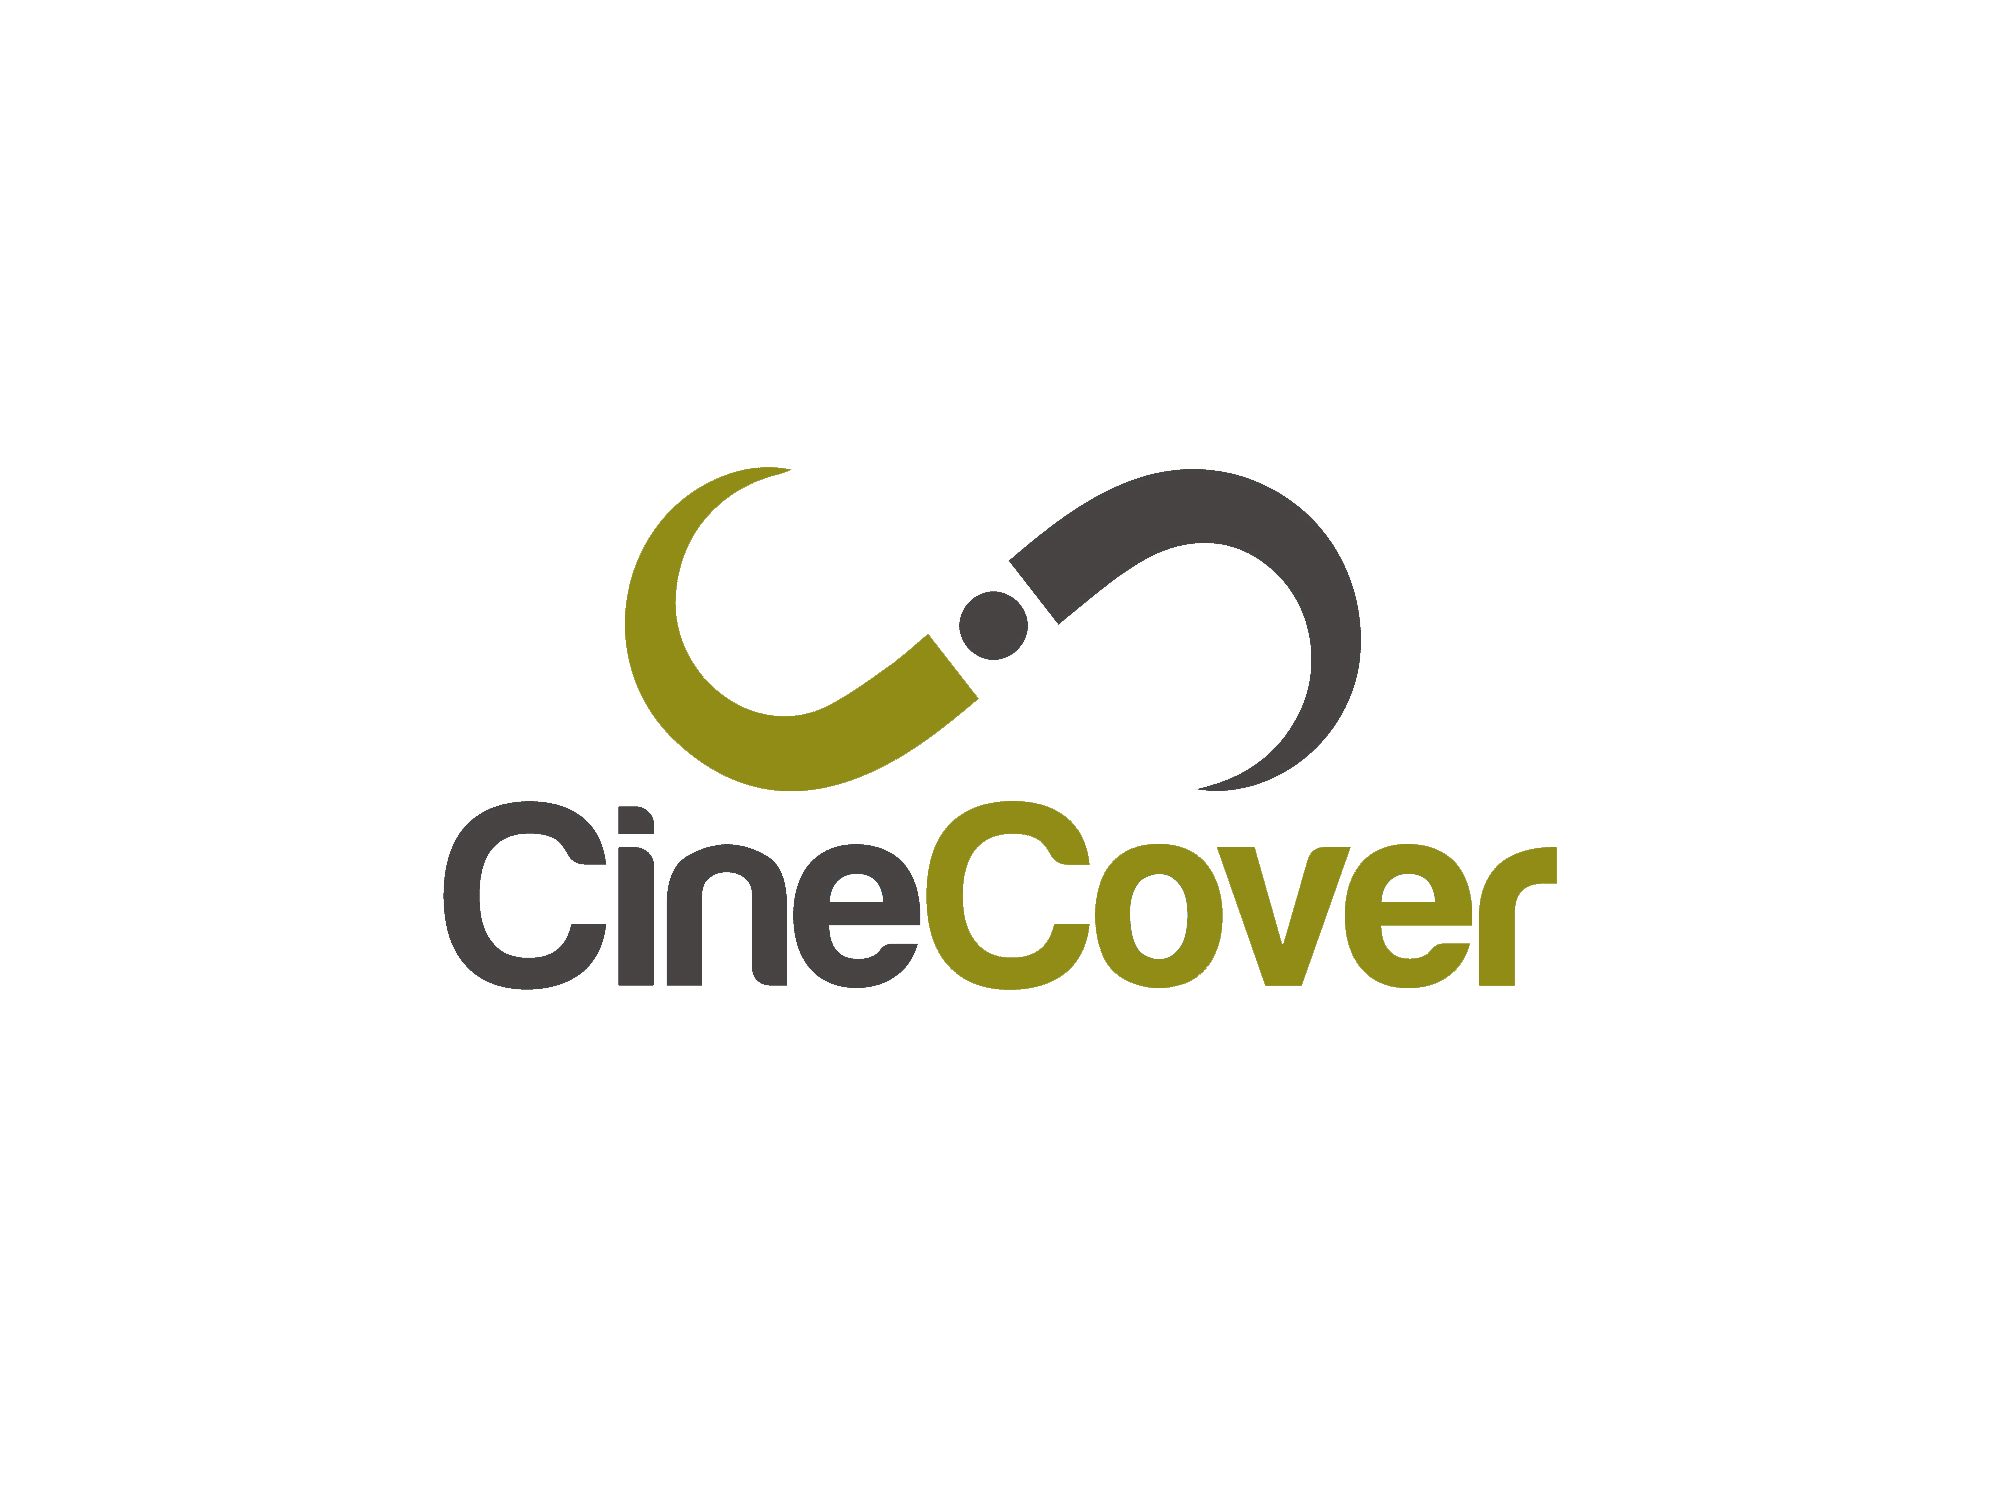 CineCover Drone Aerial Survey Specialists